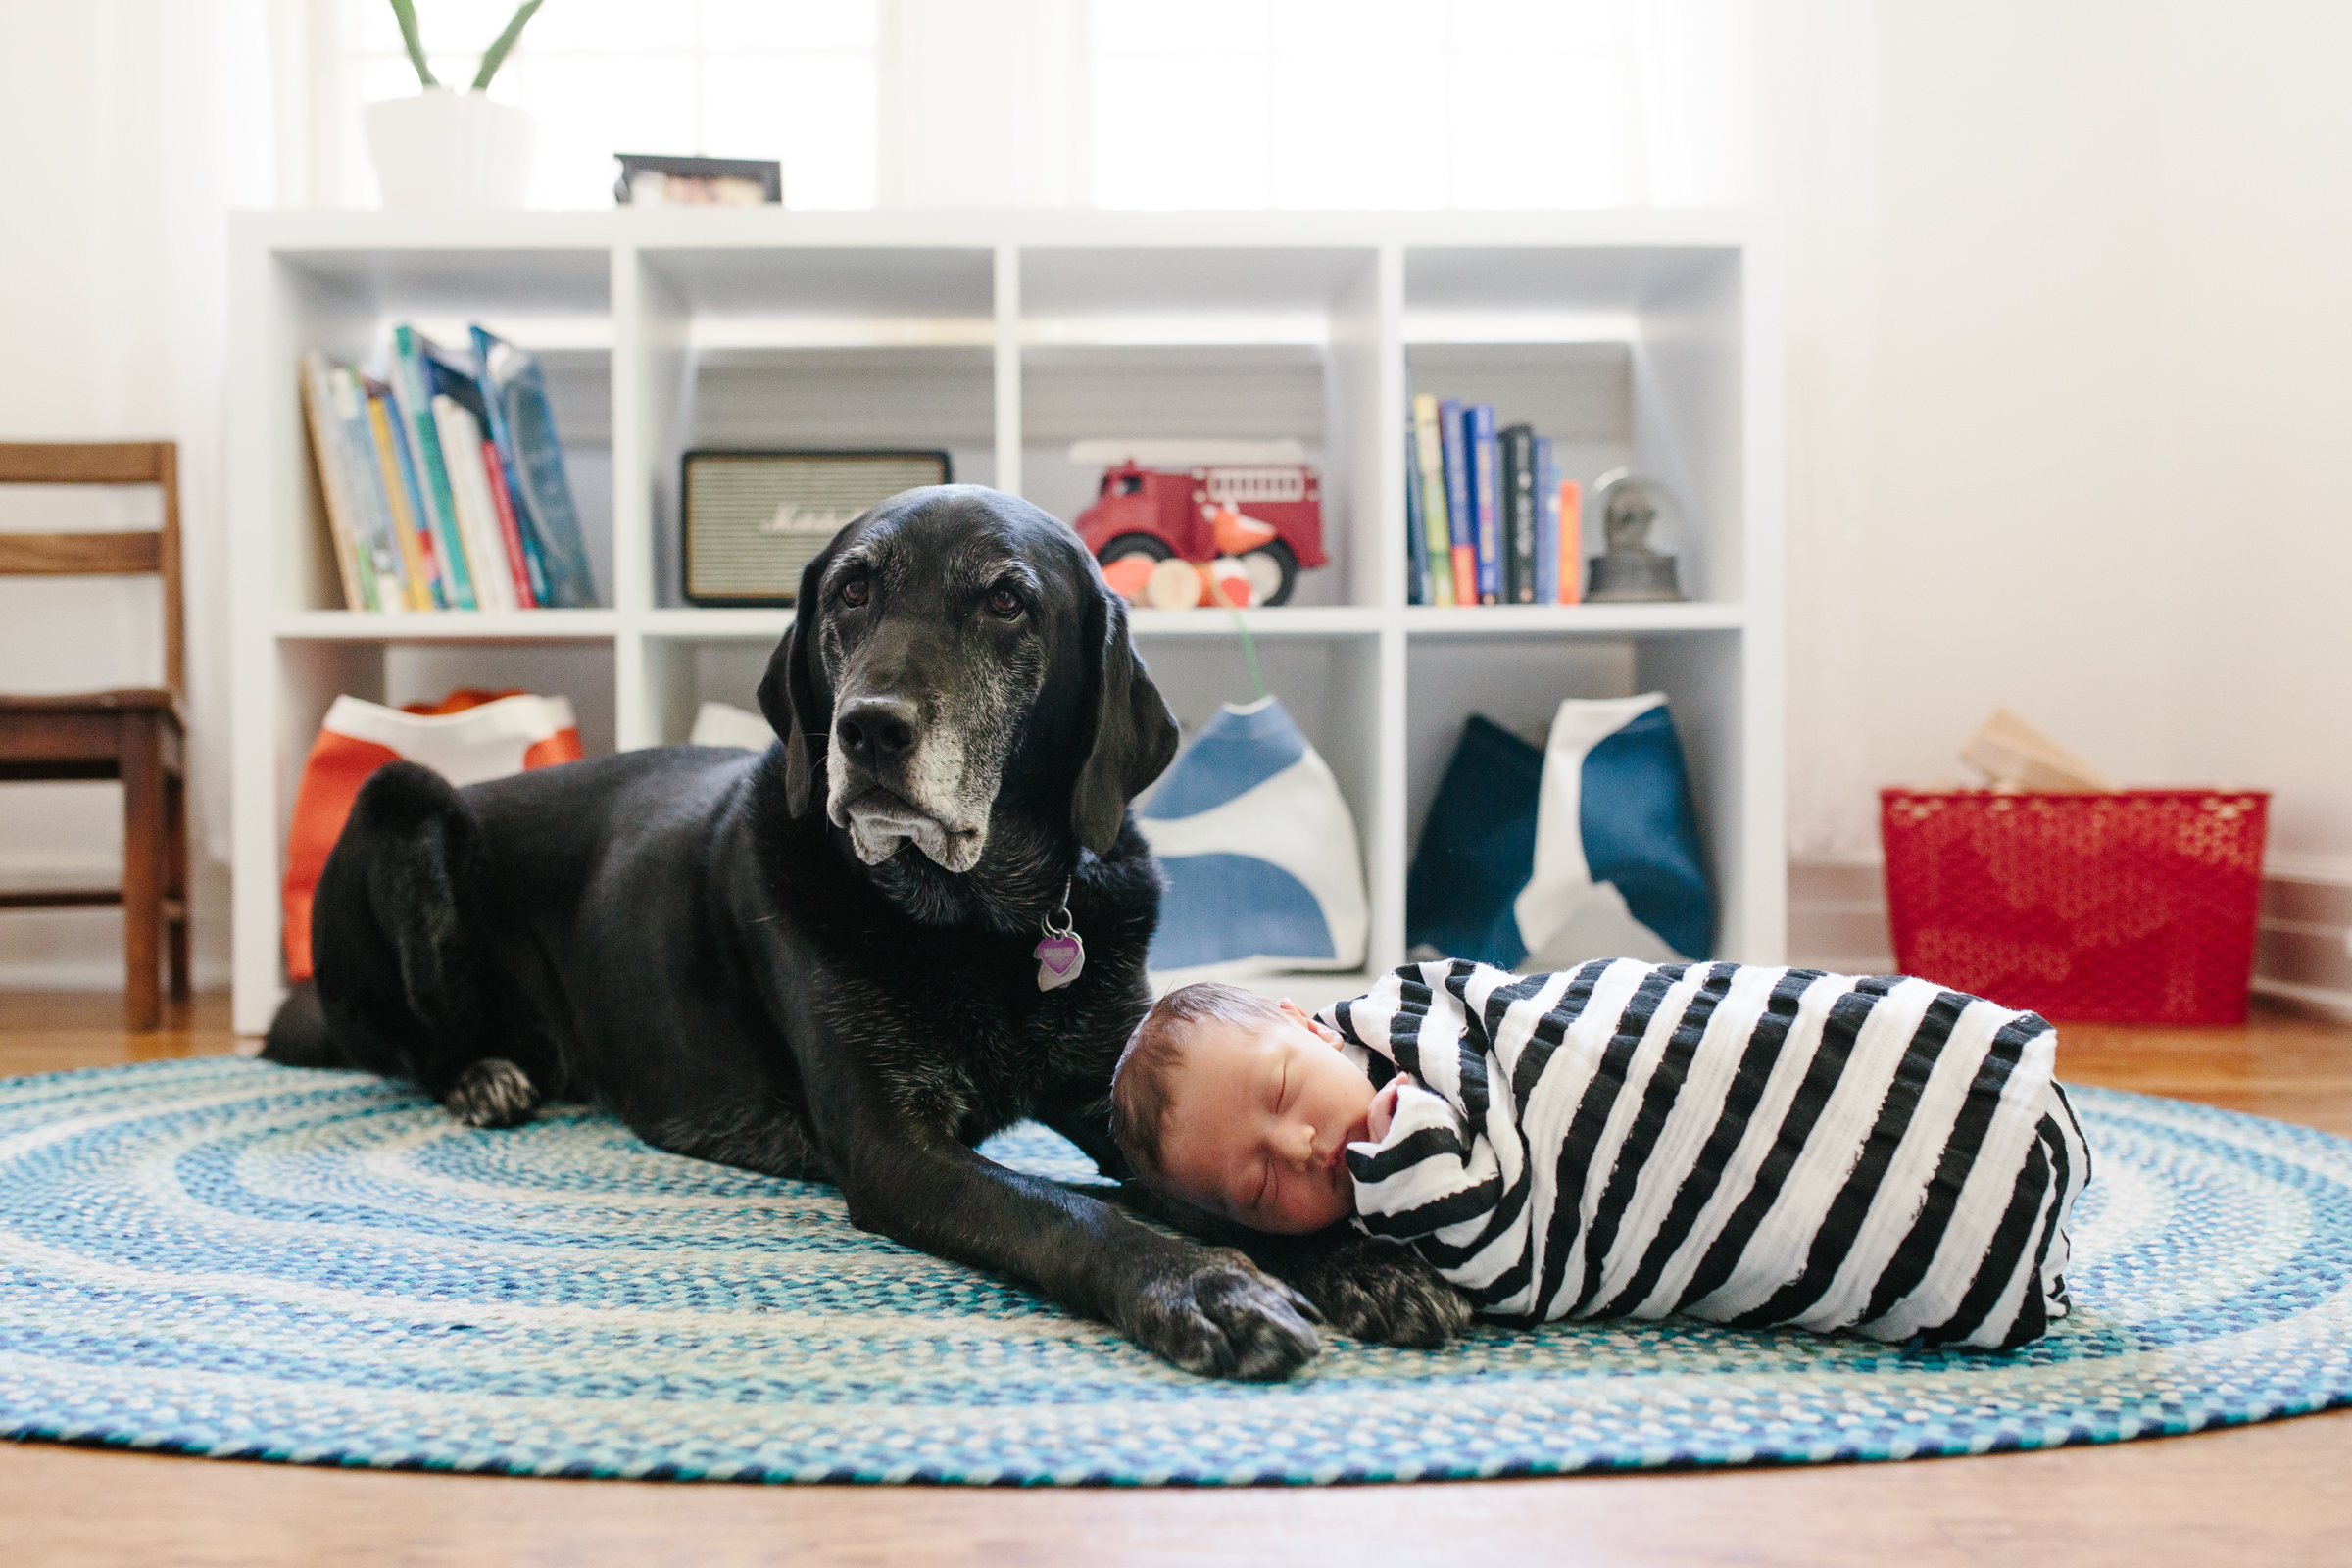 newborn_photography_labrador_dog_nursery_inspiration_lifestyle_OKC.JPG